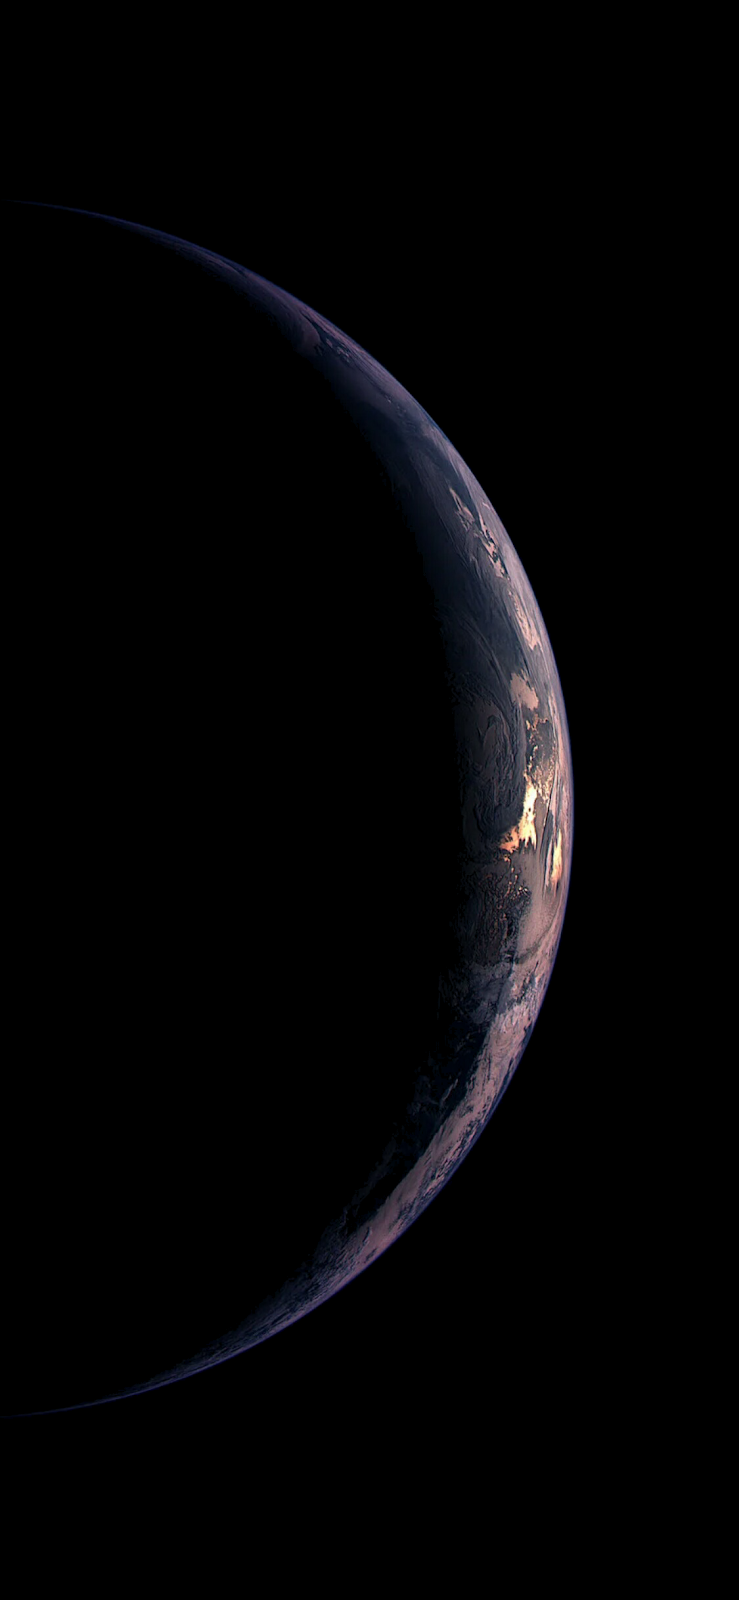 Earth for iPhone X/XS ( for Amoled display) #blackwallpaperiphone